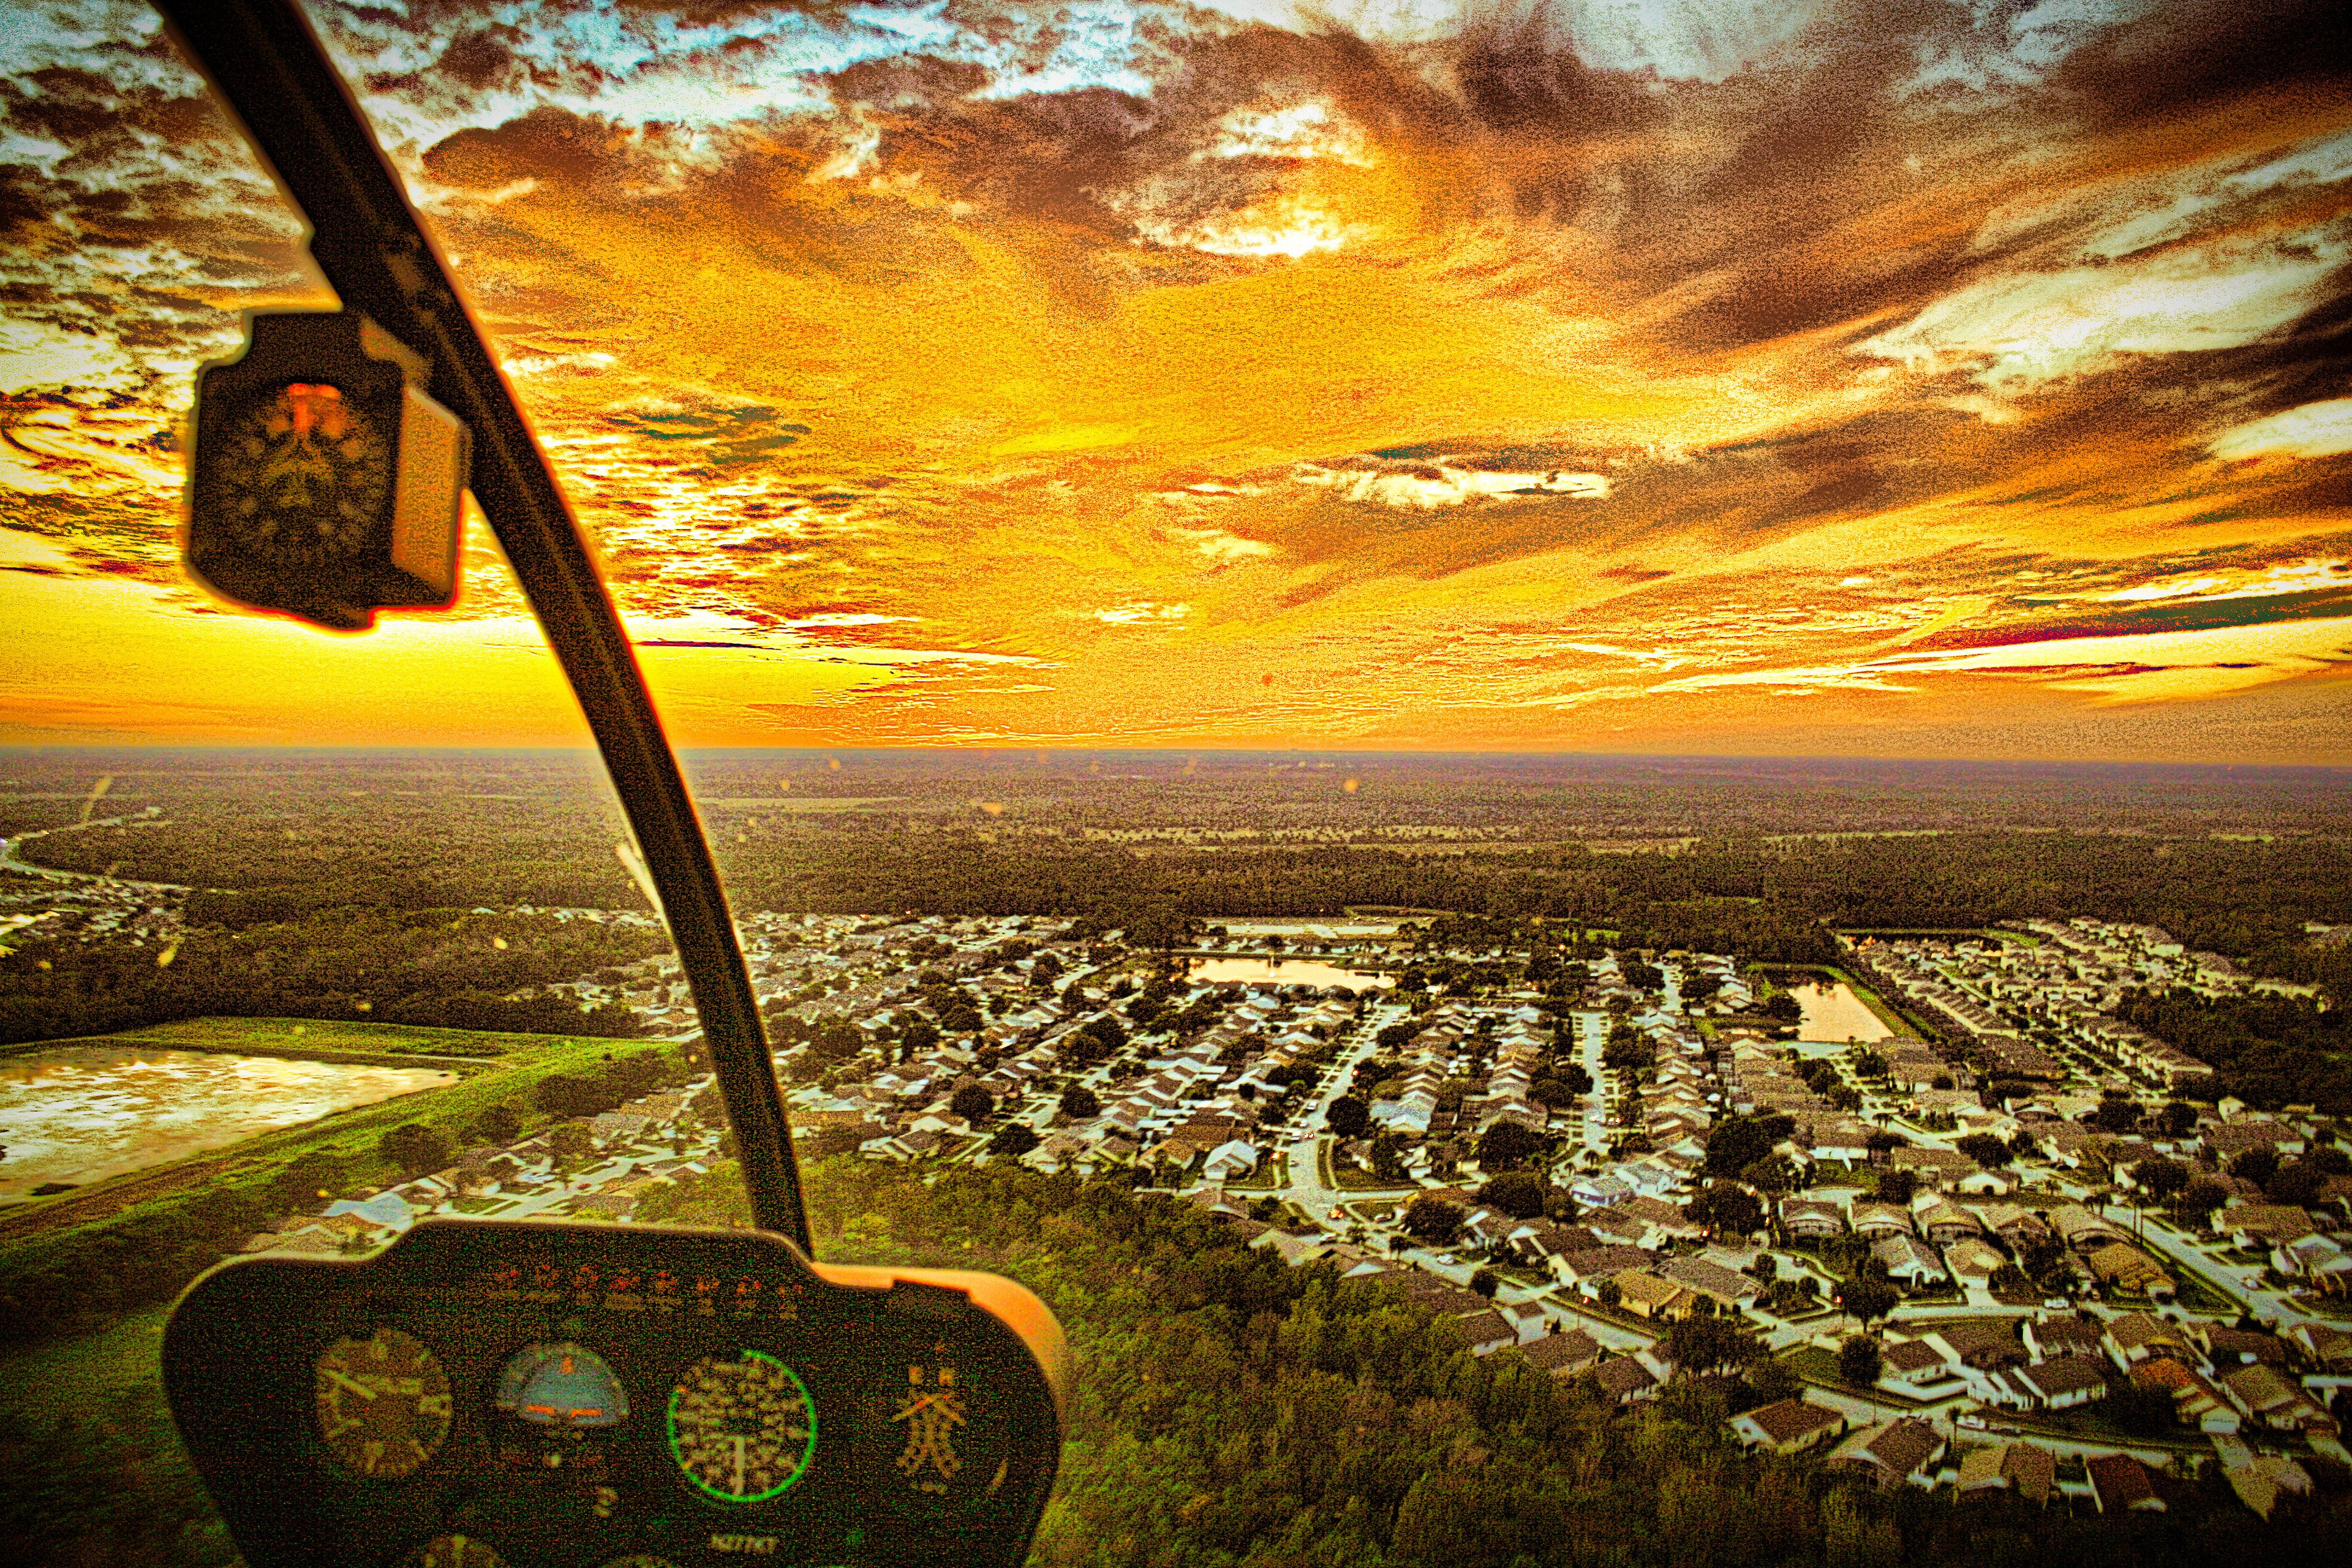 Helicopter Tour of Theme Parks - 30 Minutes